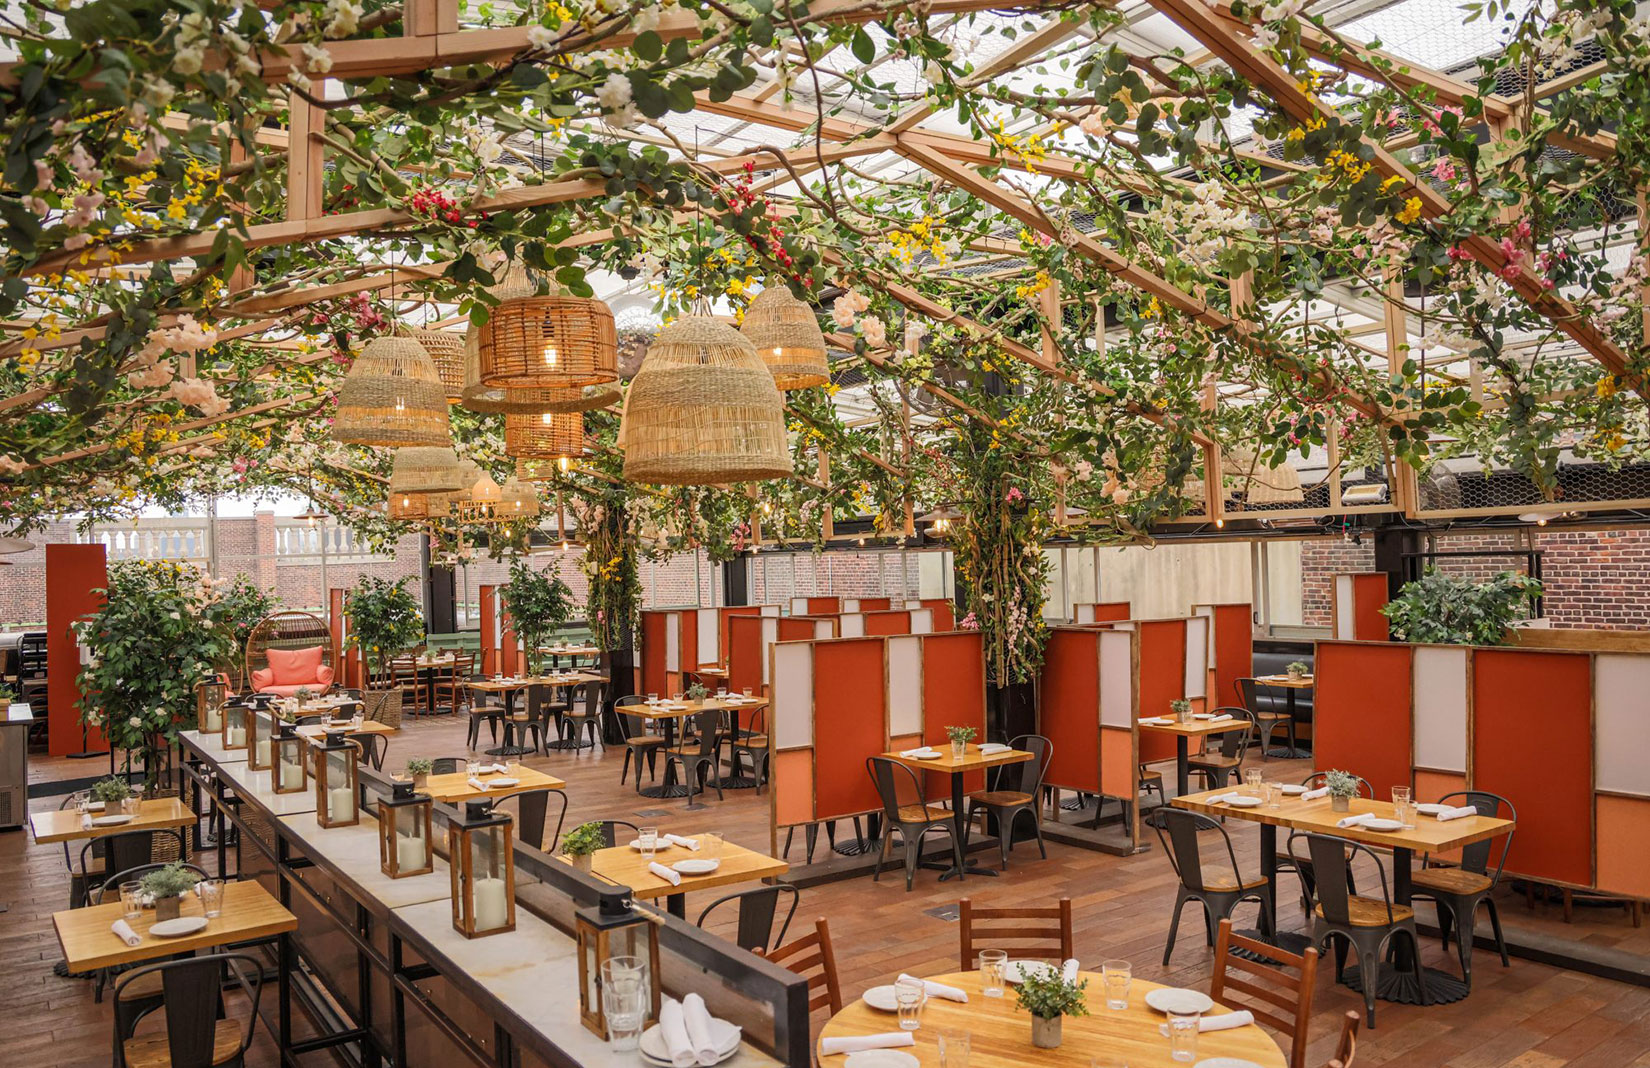 Eataly's rooftop dining room brings Southern Italy to New York